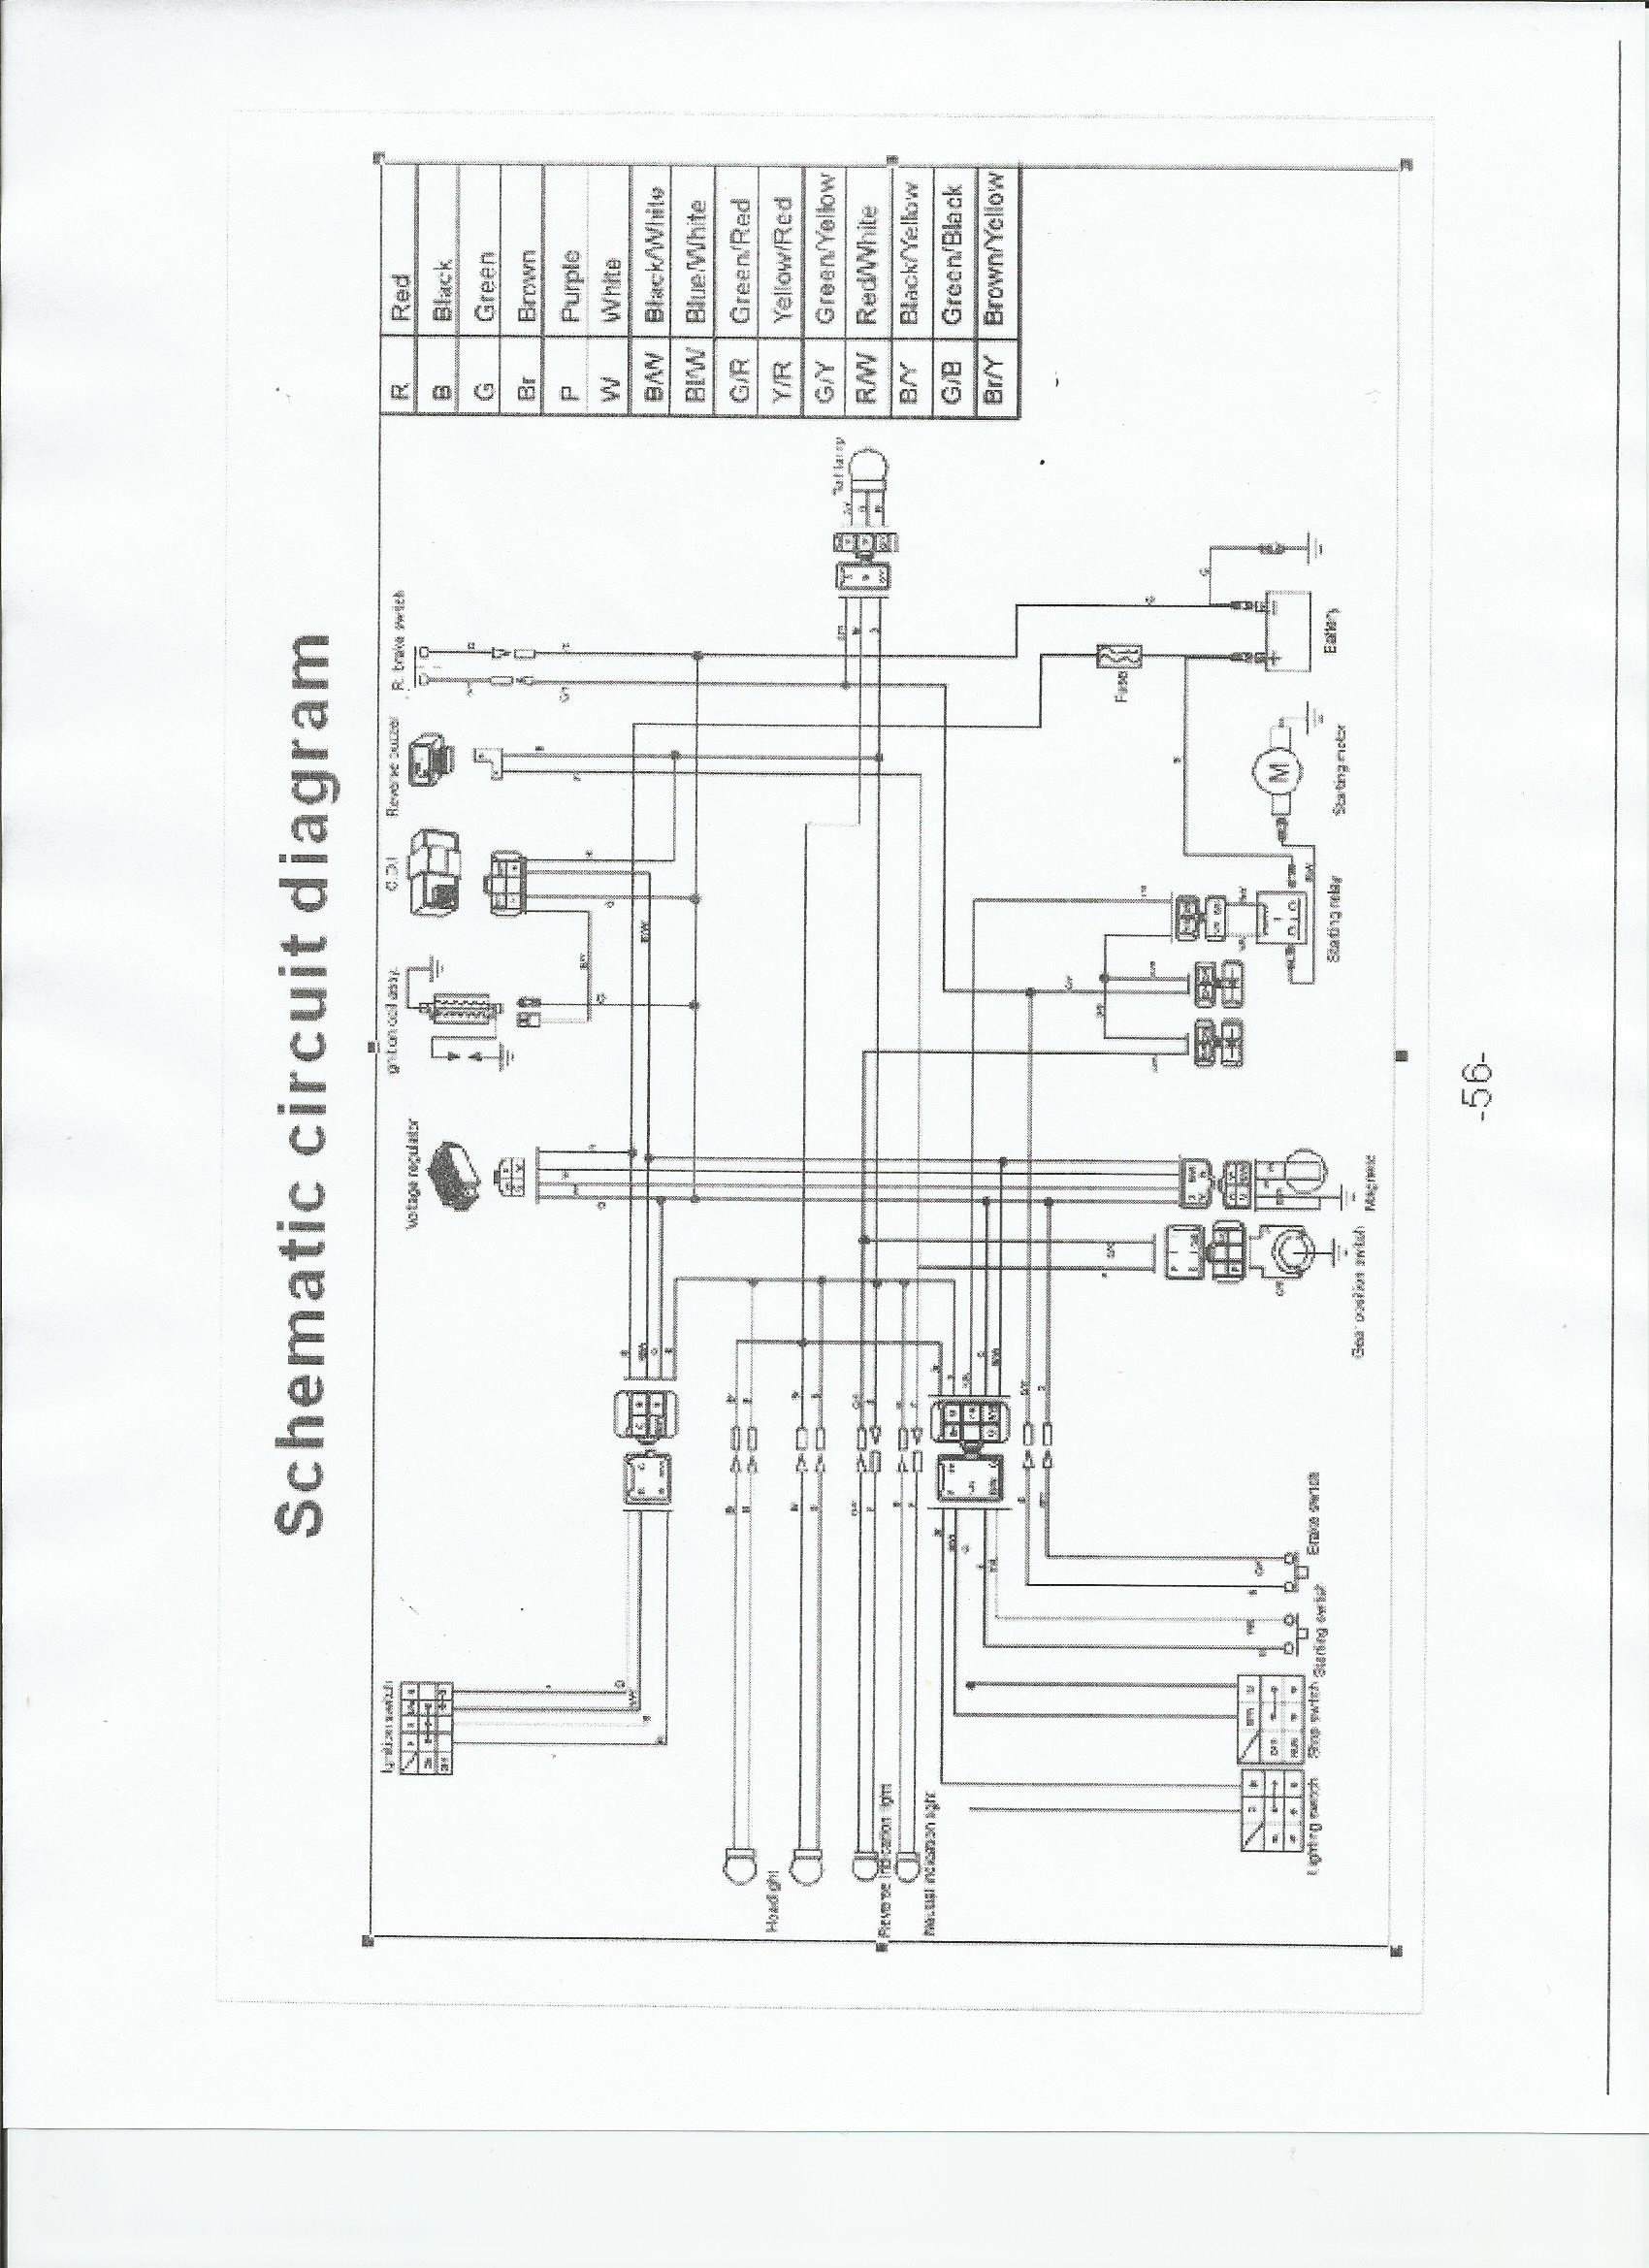 Wiring Diagram For Electric Bike